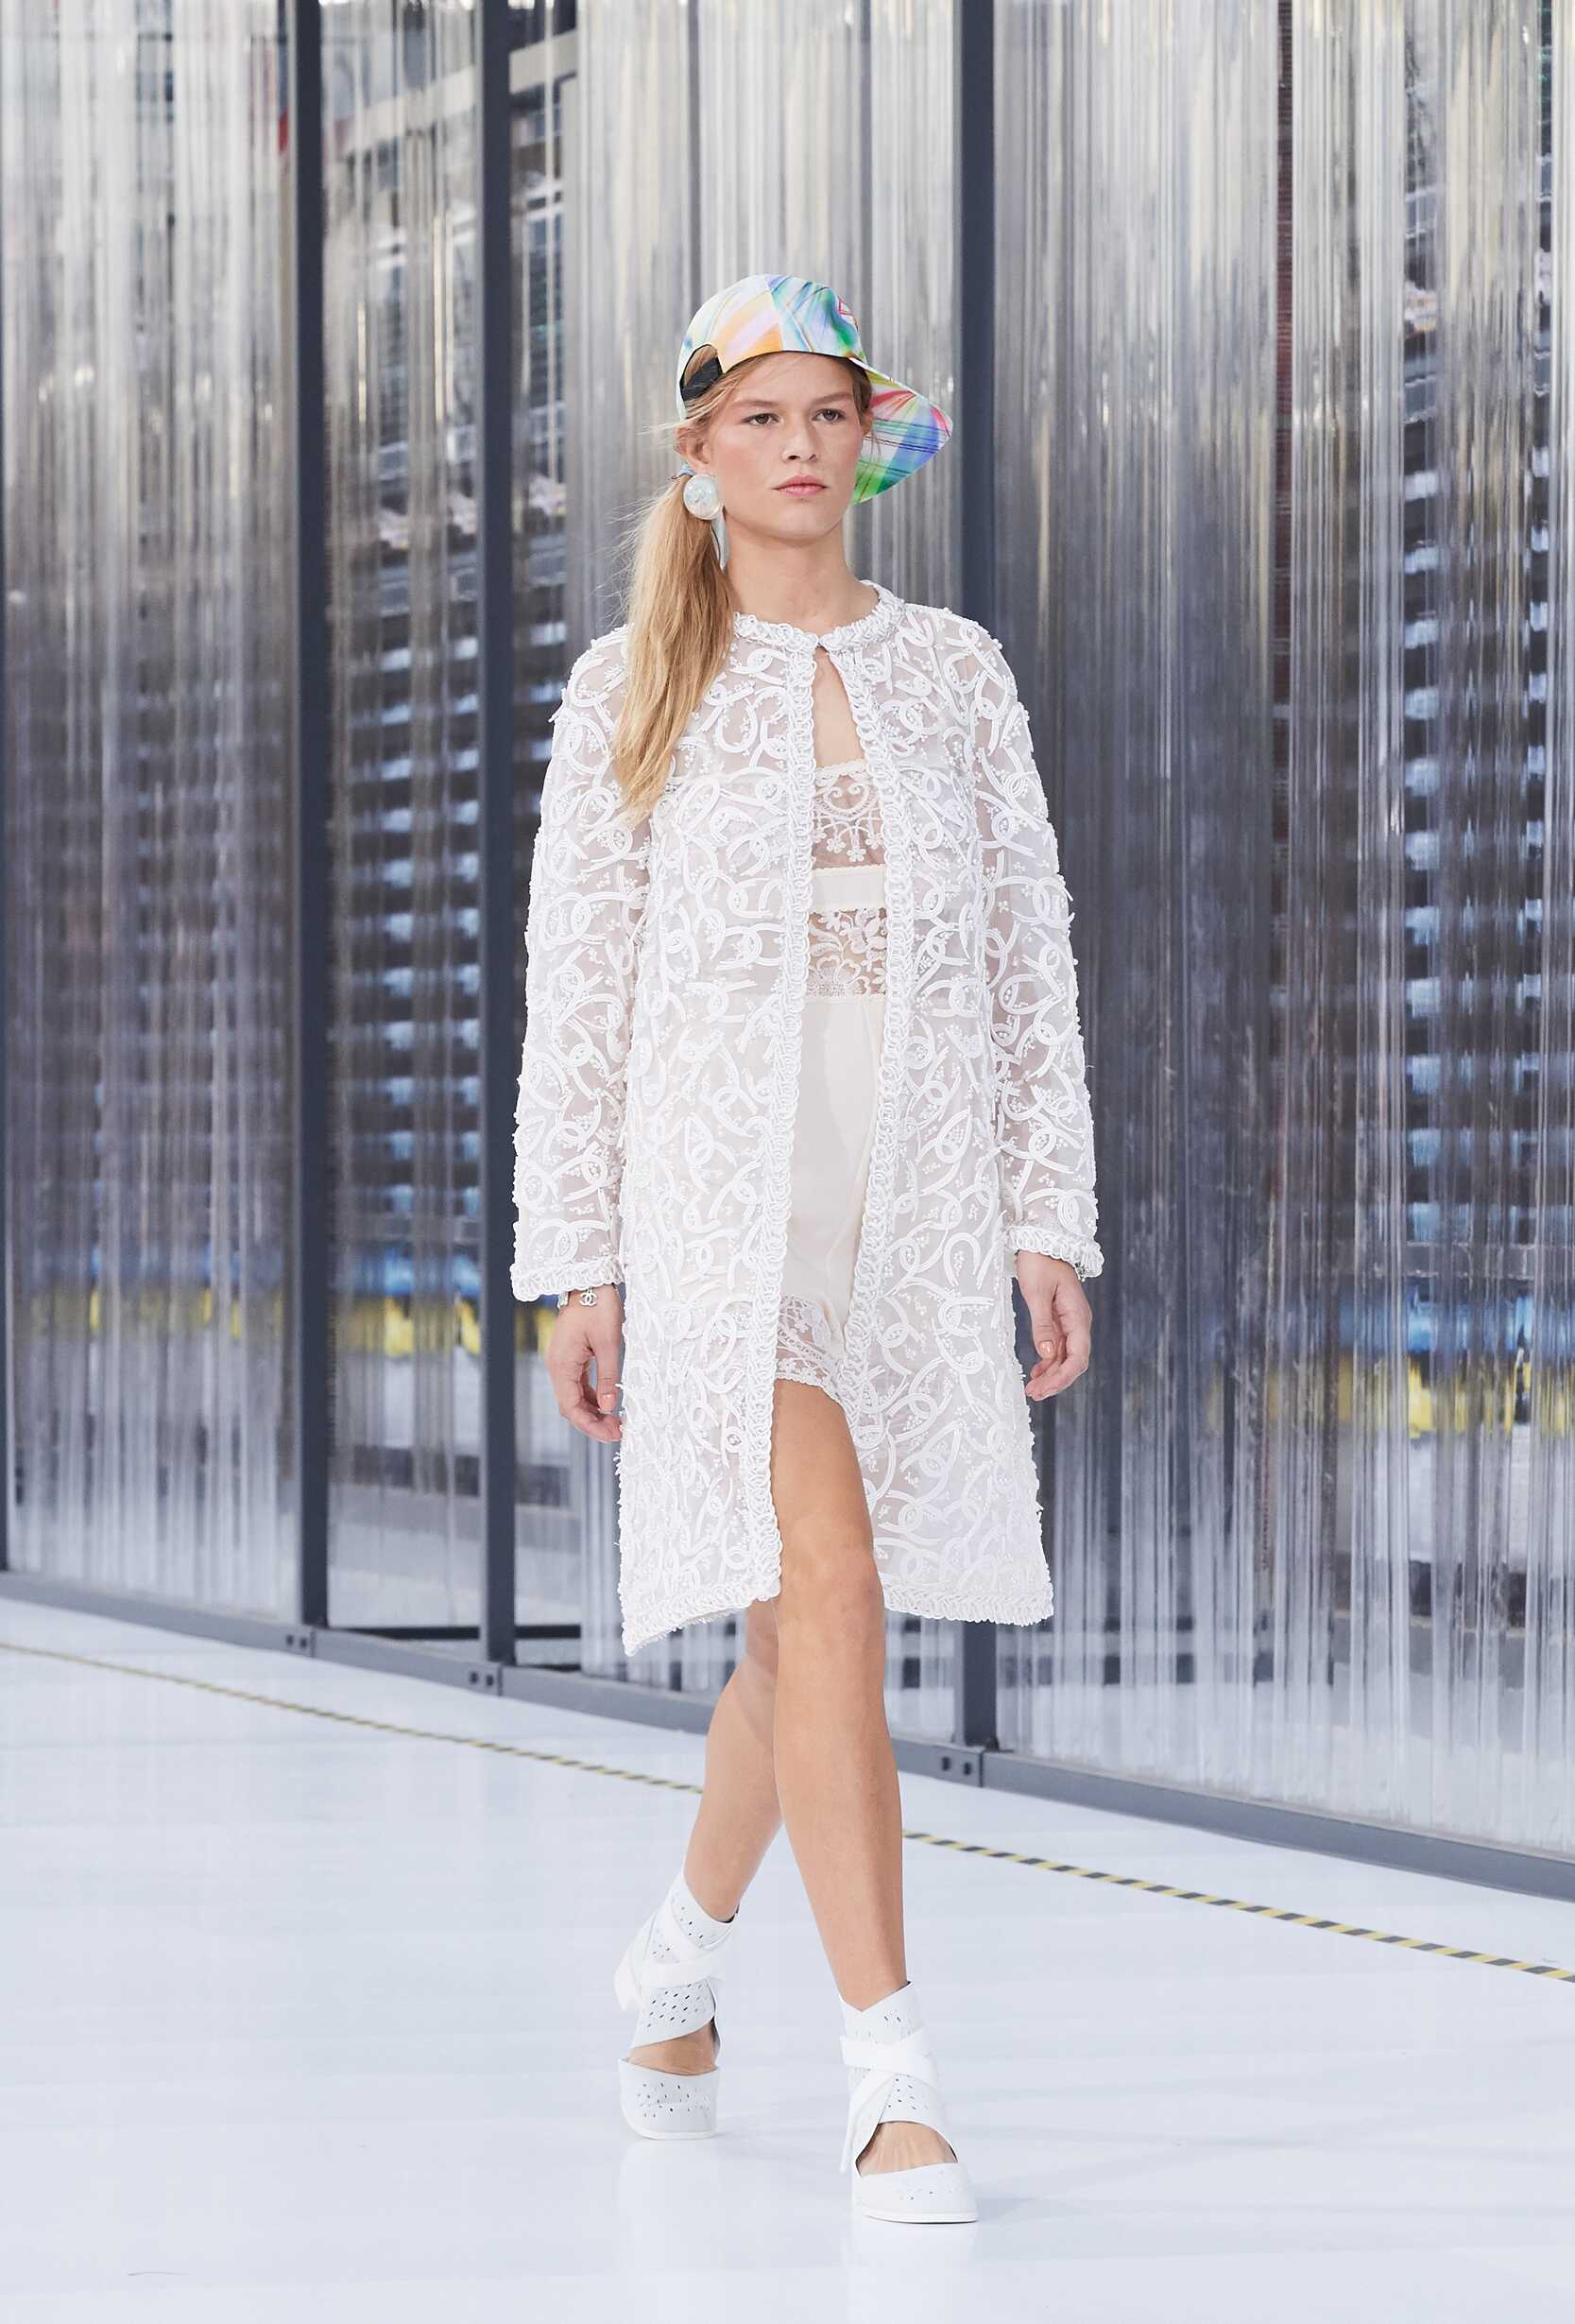 2017 Woman Chanel Trends Paris Fashion Week